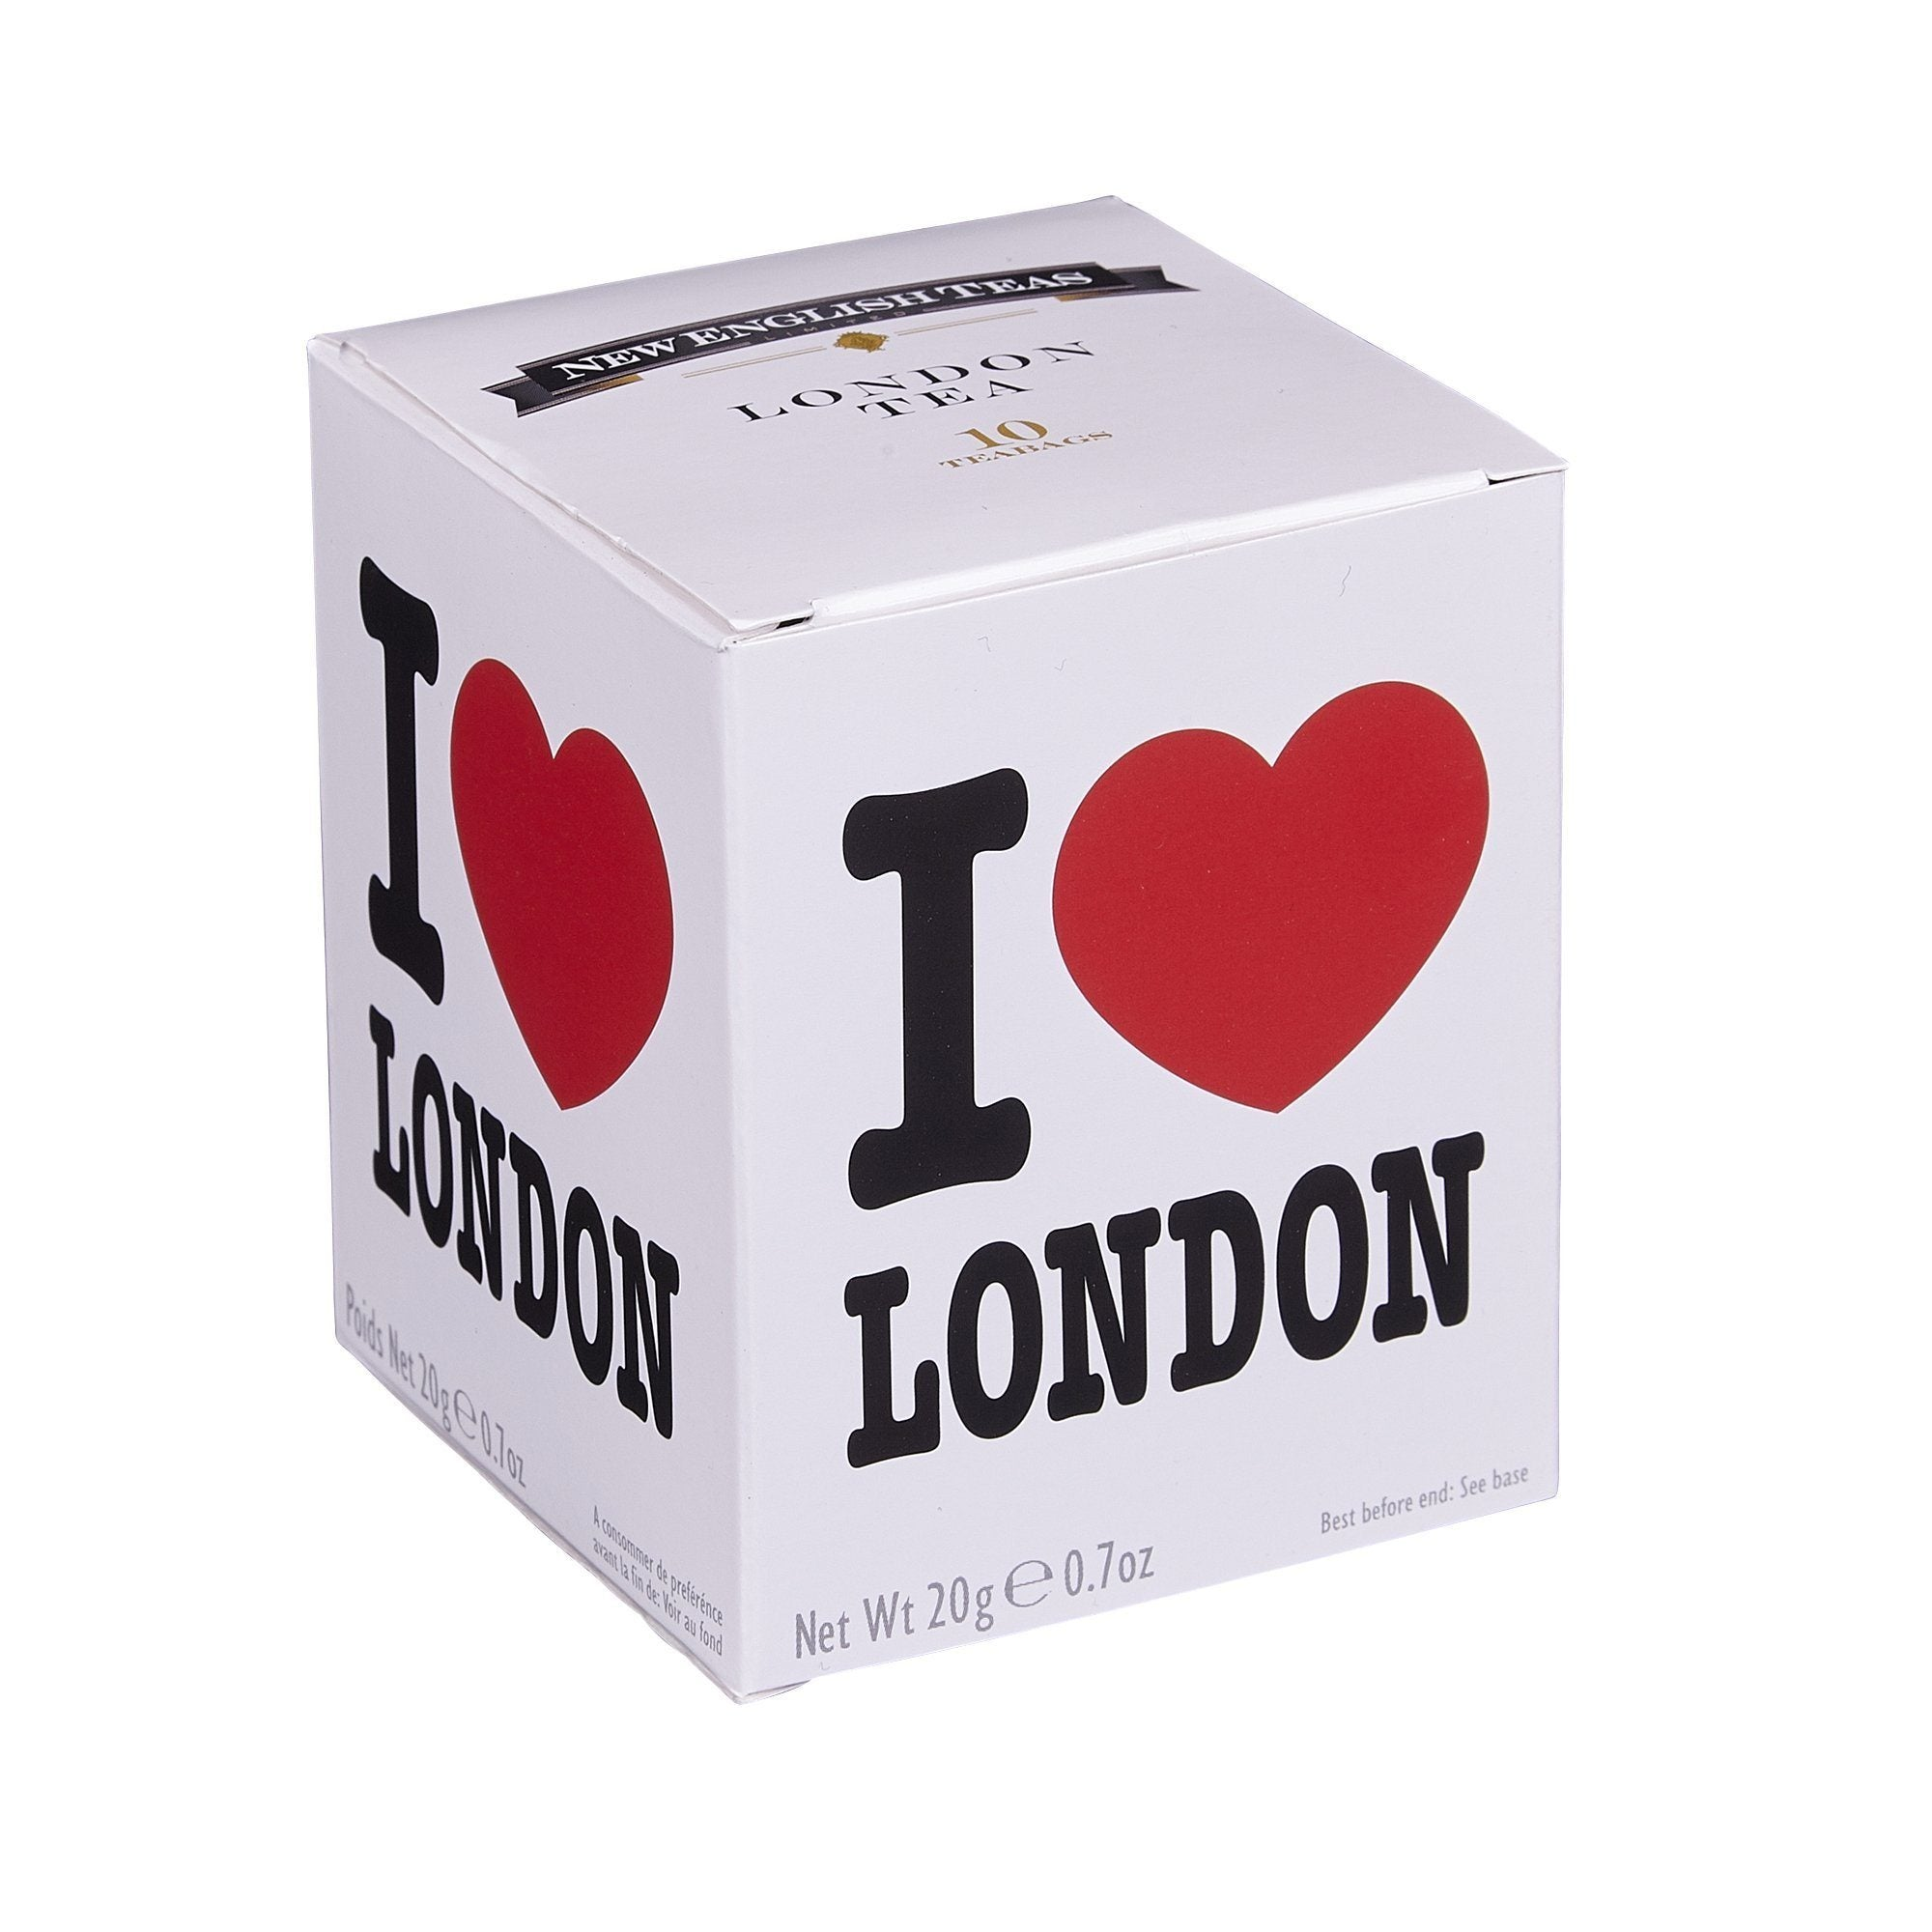 I Love London Afternoon Tea 10 Teabag Carton Black Tea New English Teas